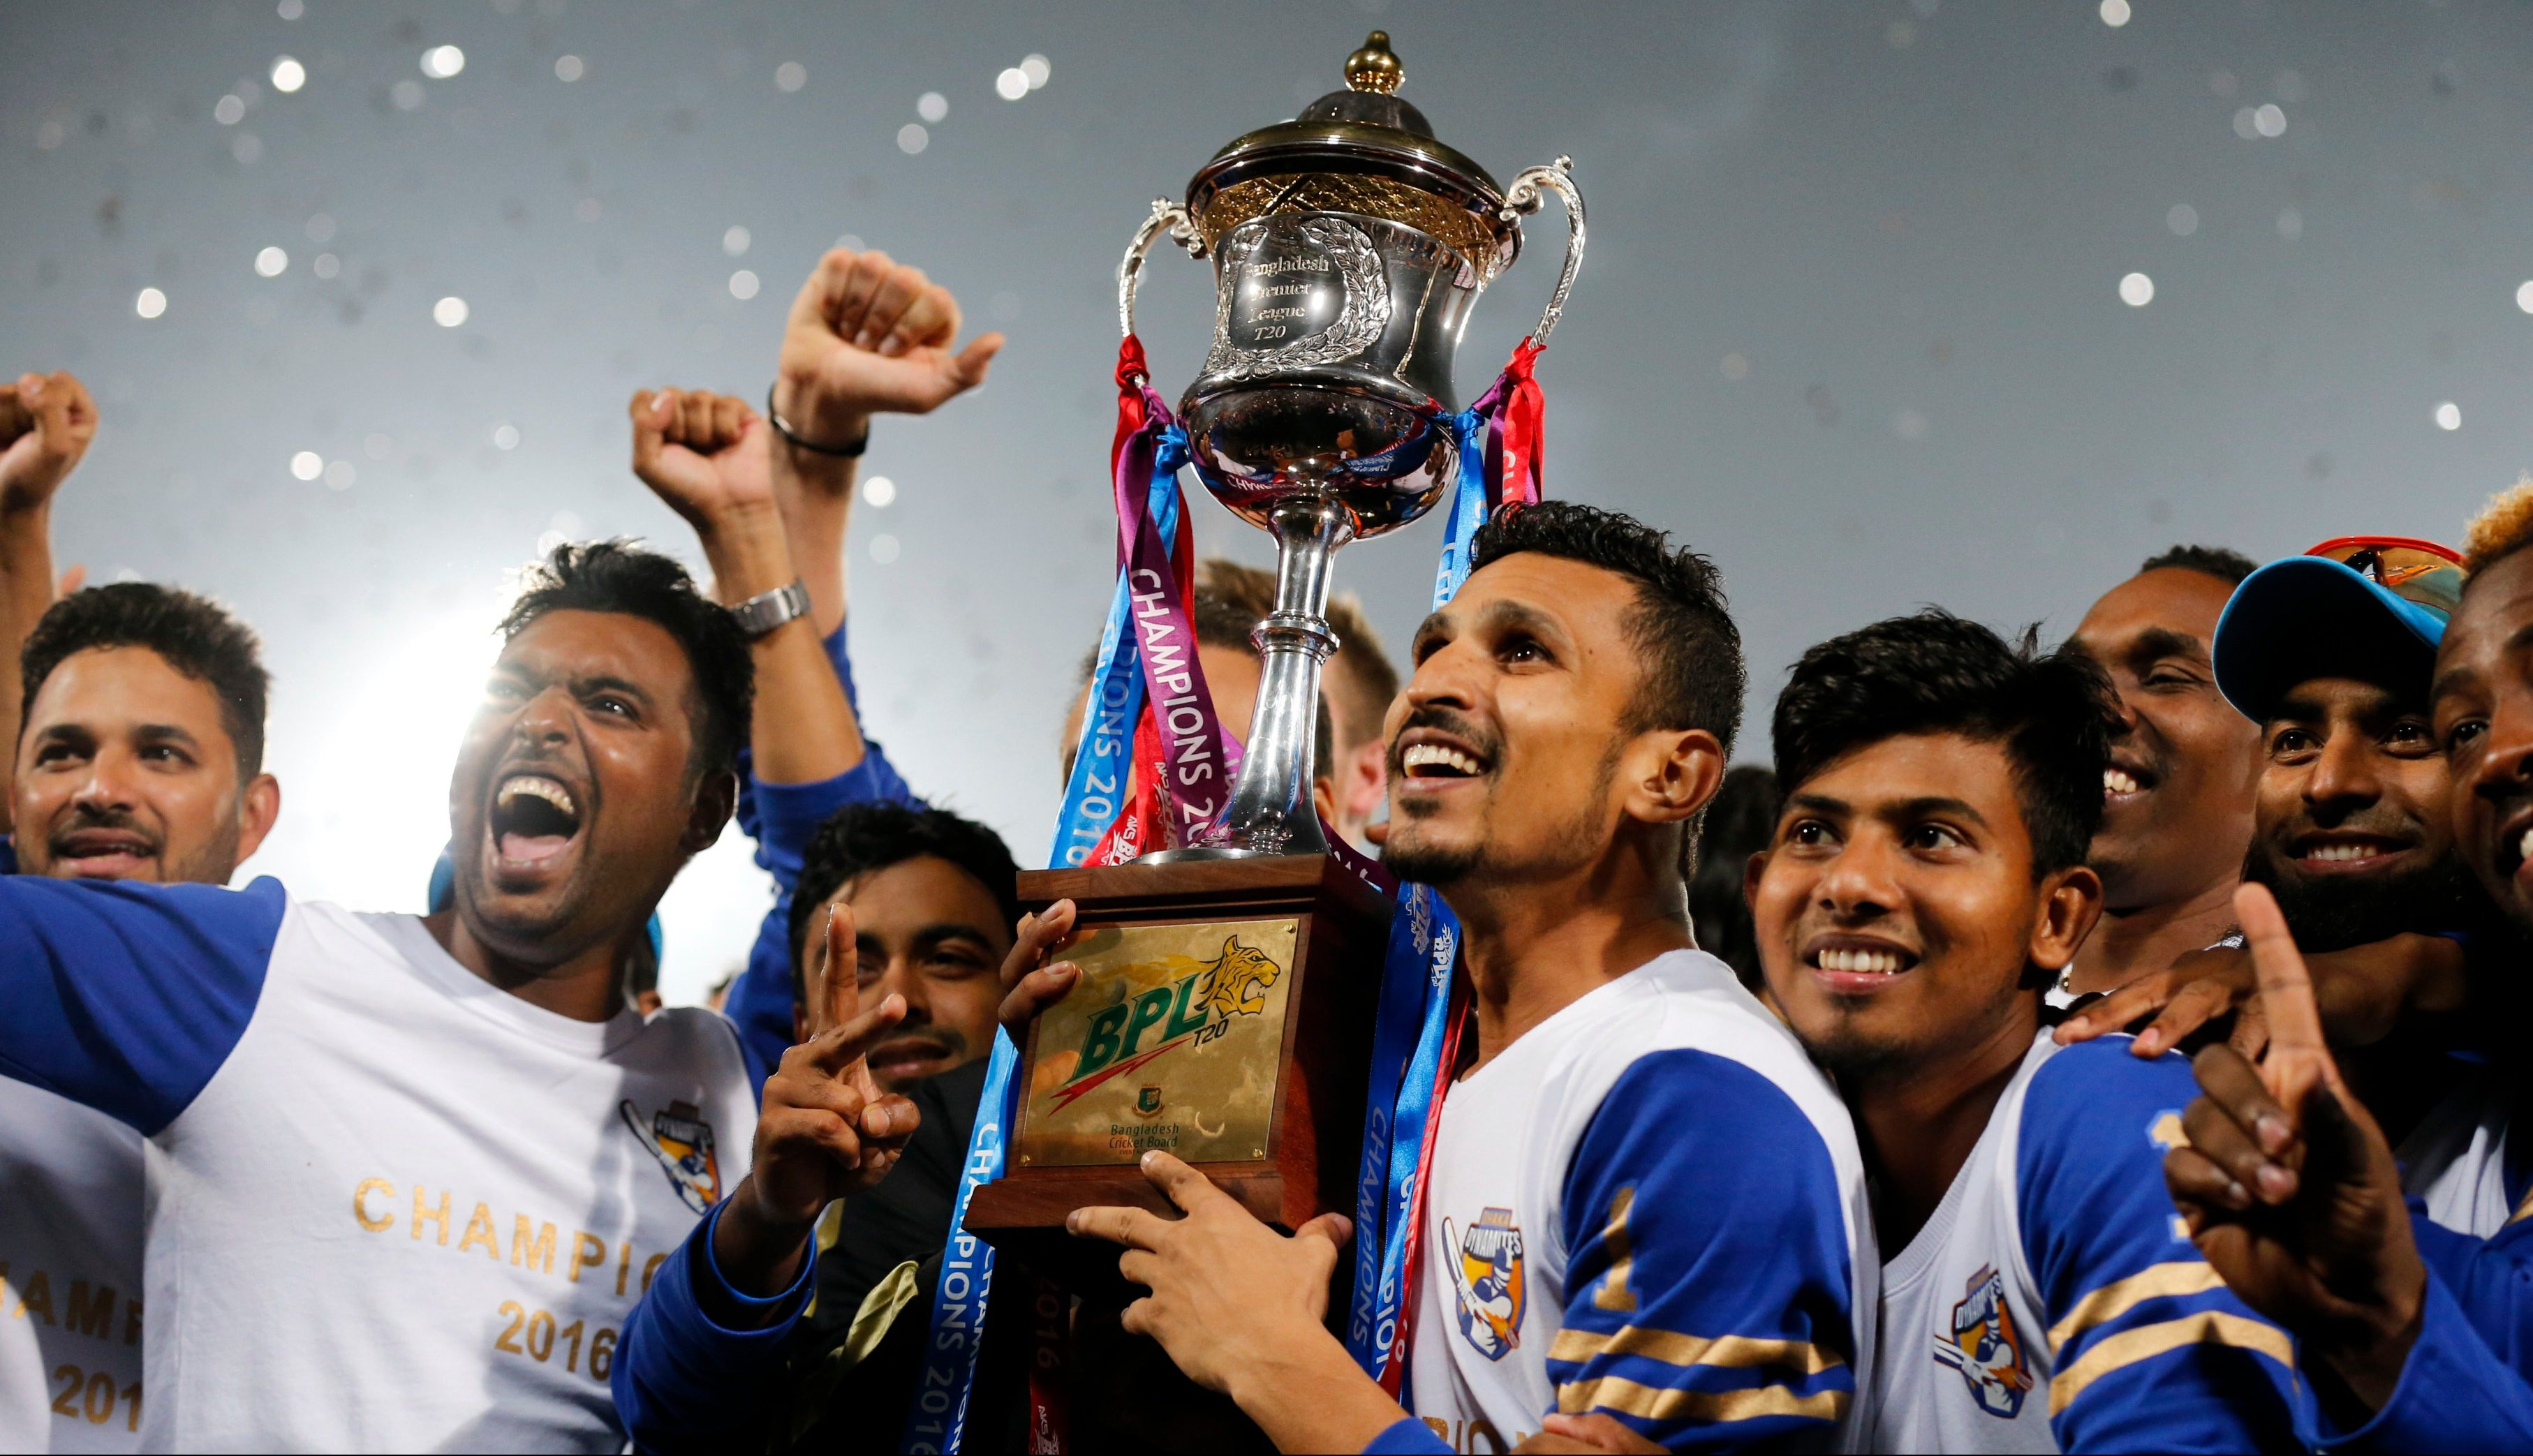 Bangladesh premier league betting odds define lay in betting what does ats